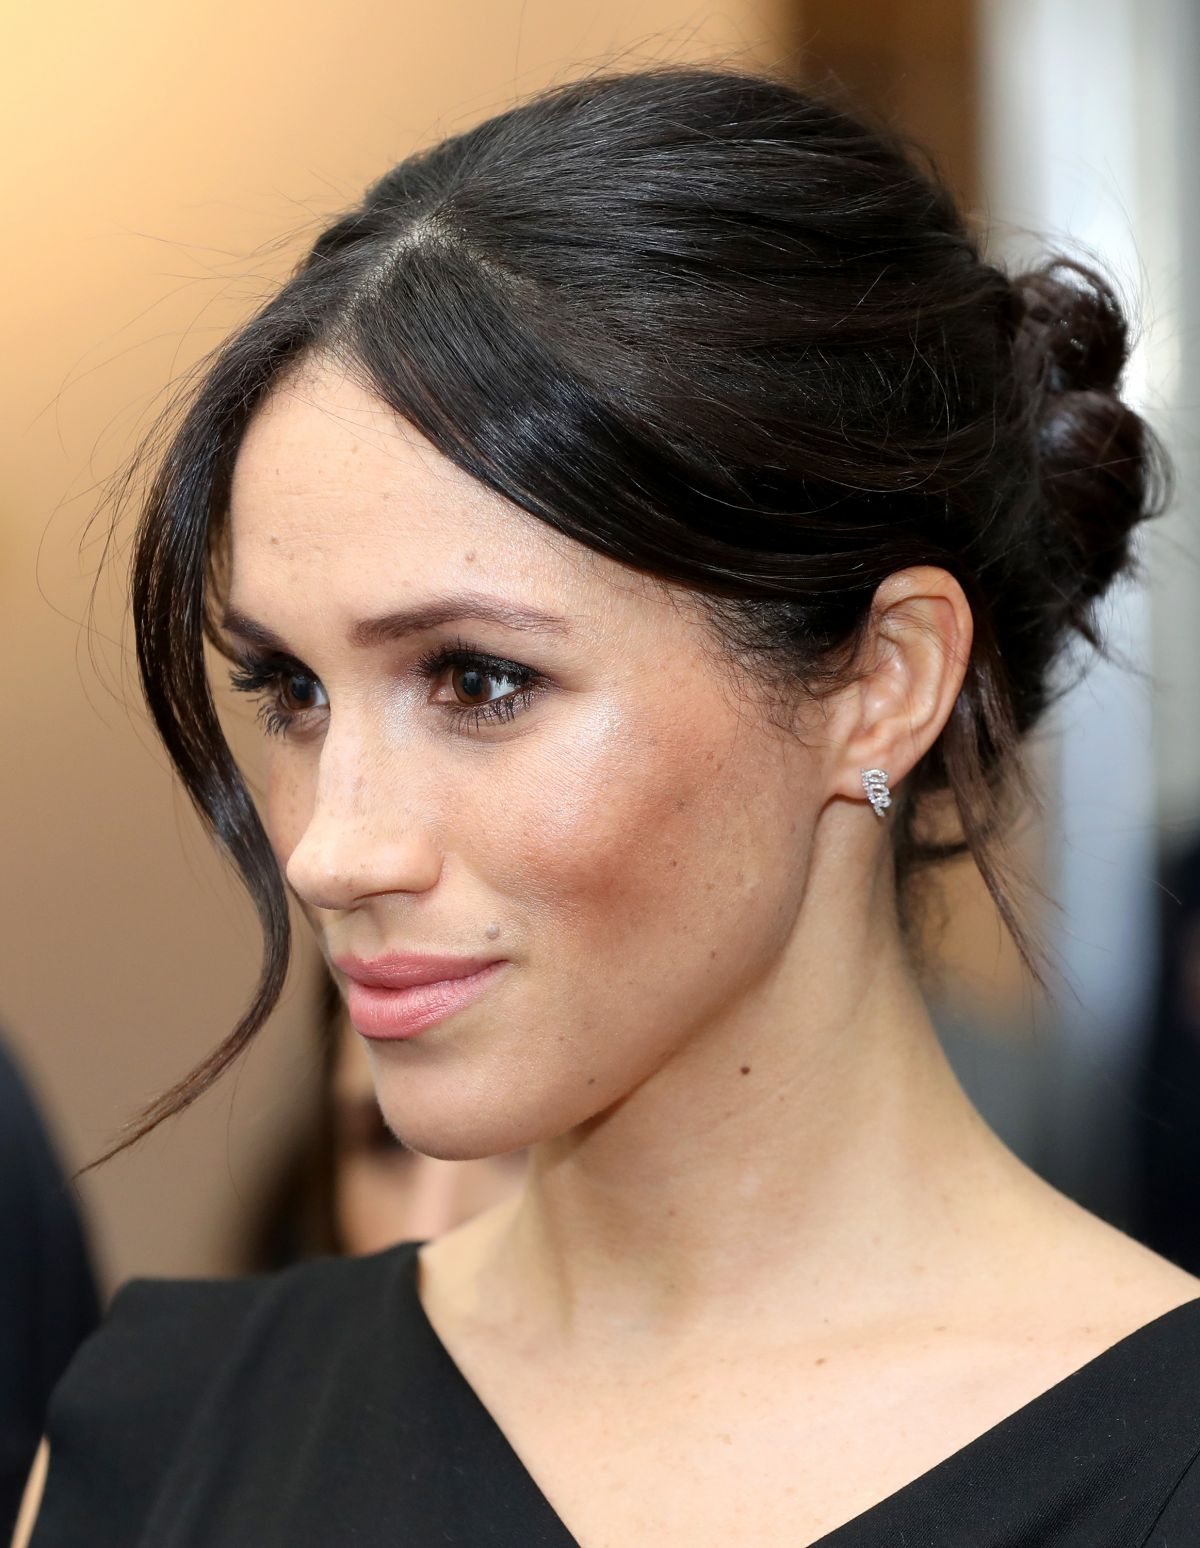 markle women Fashion magazine british vogue have published their list of the 25 most influential women, and meghan markle is included alongside politicians, models and popstars.